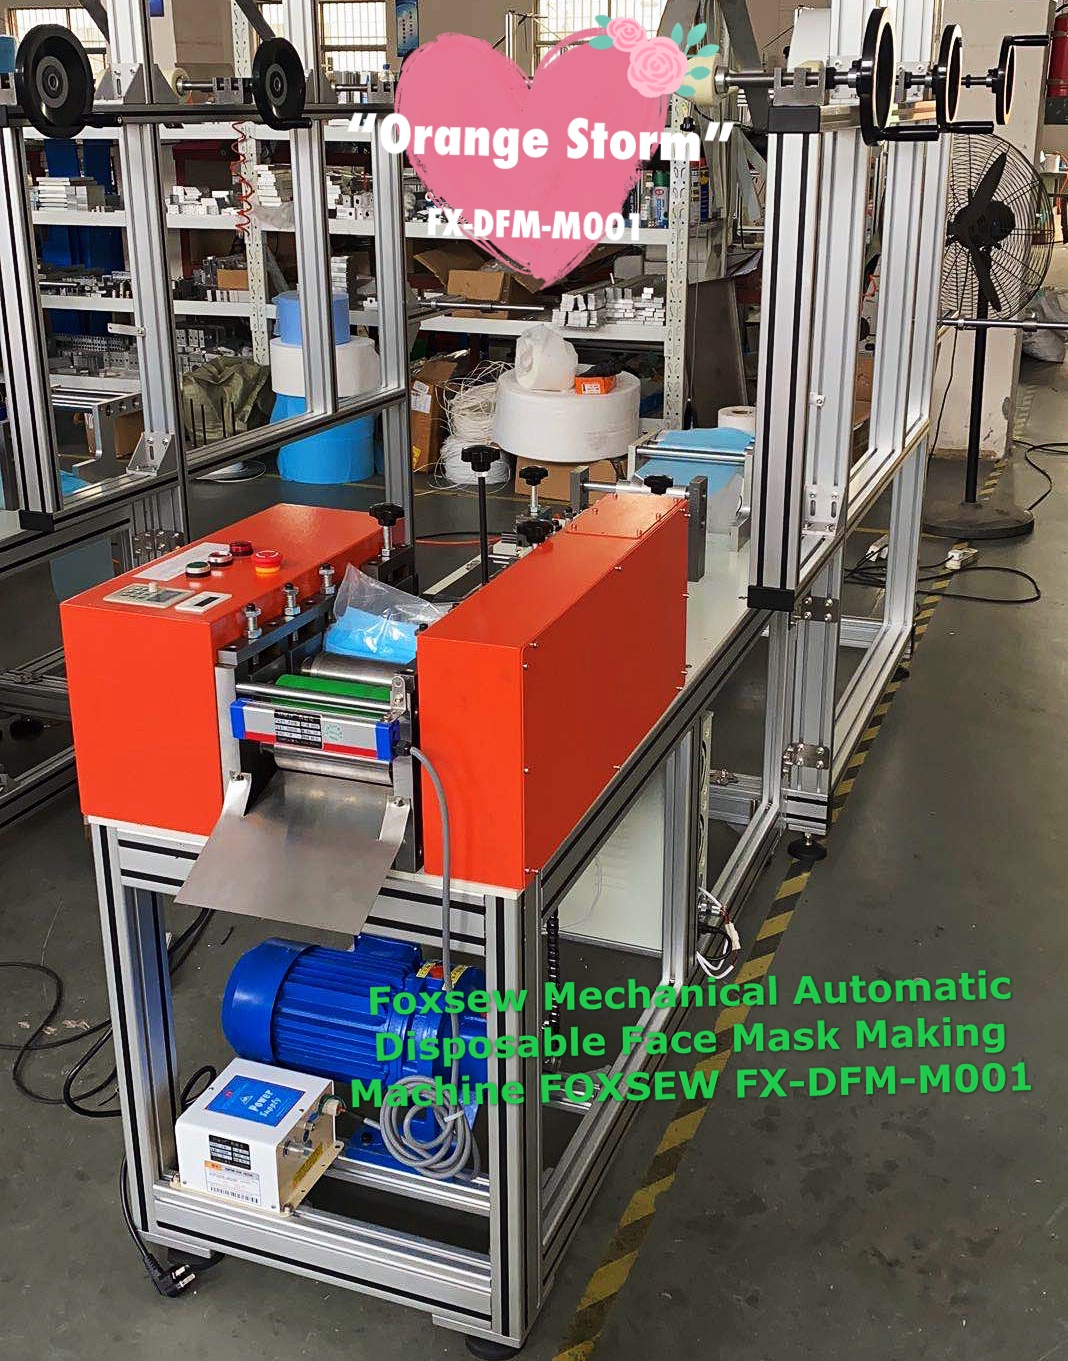 Mechanical Automatic Disposable Face Mask Making Machines (6)